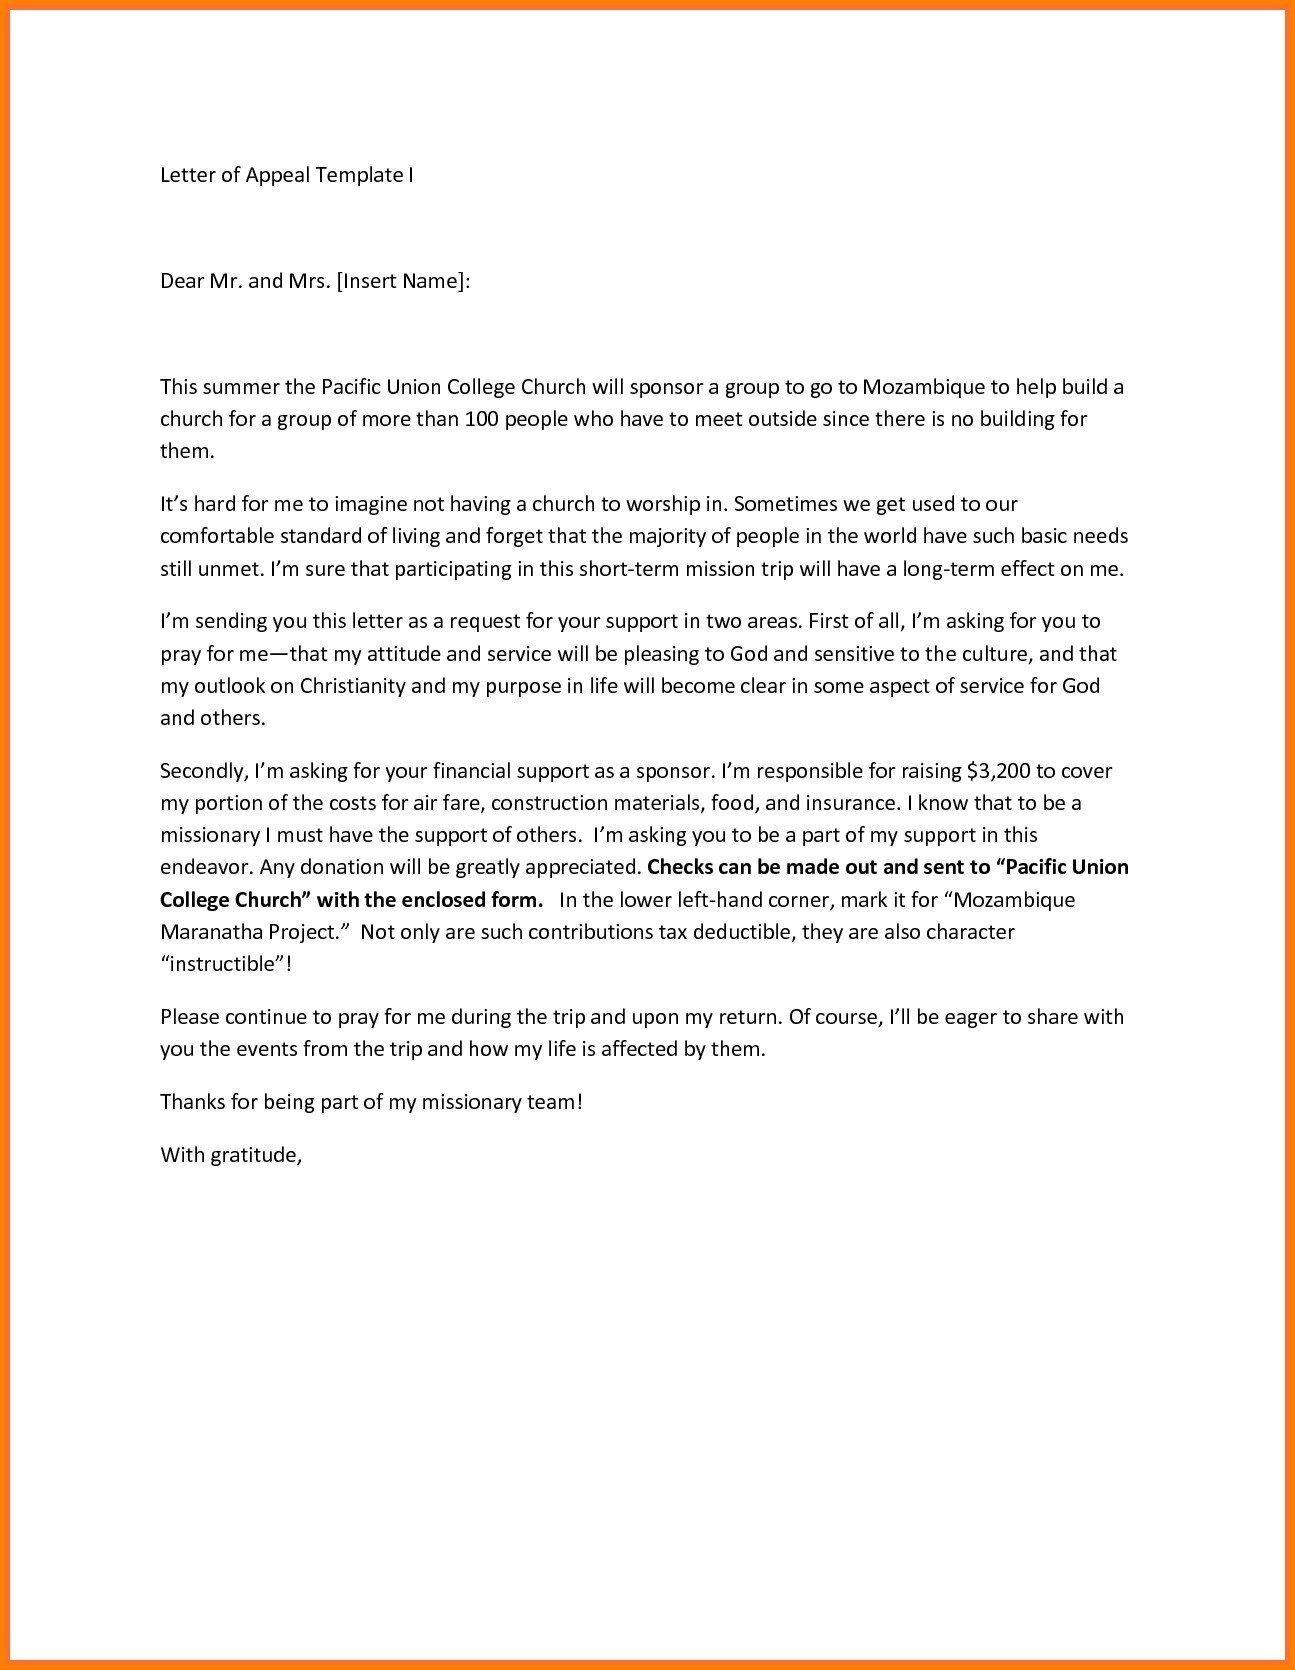 Missionary Prayer Letter Template - Legal Appeal Letter format Fresh Appeal Letter format Scho Letter